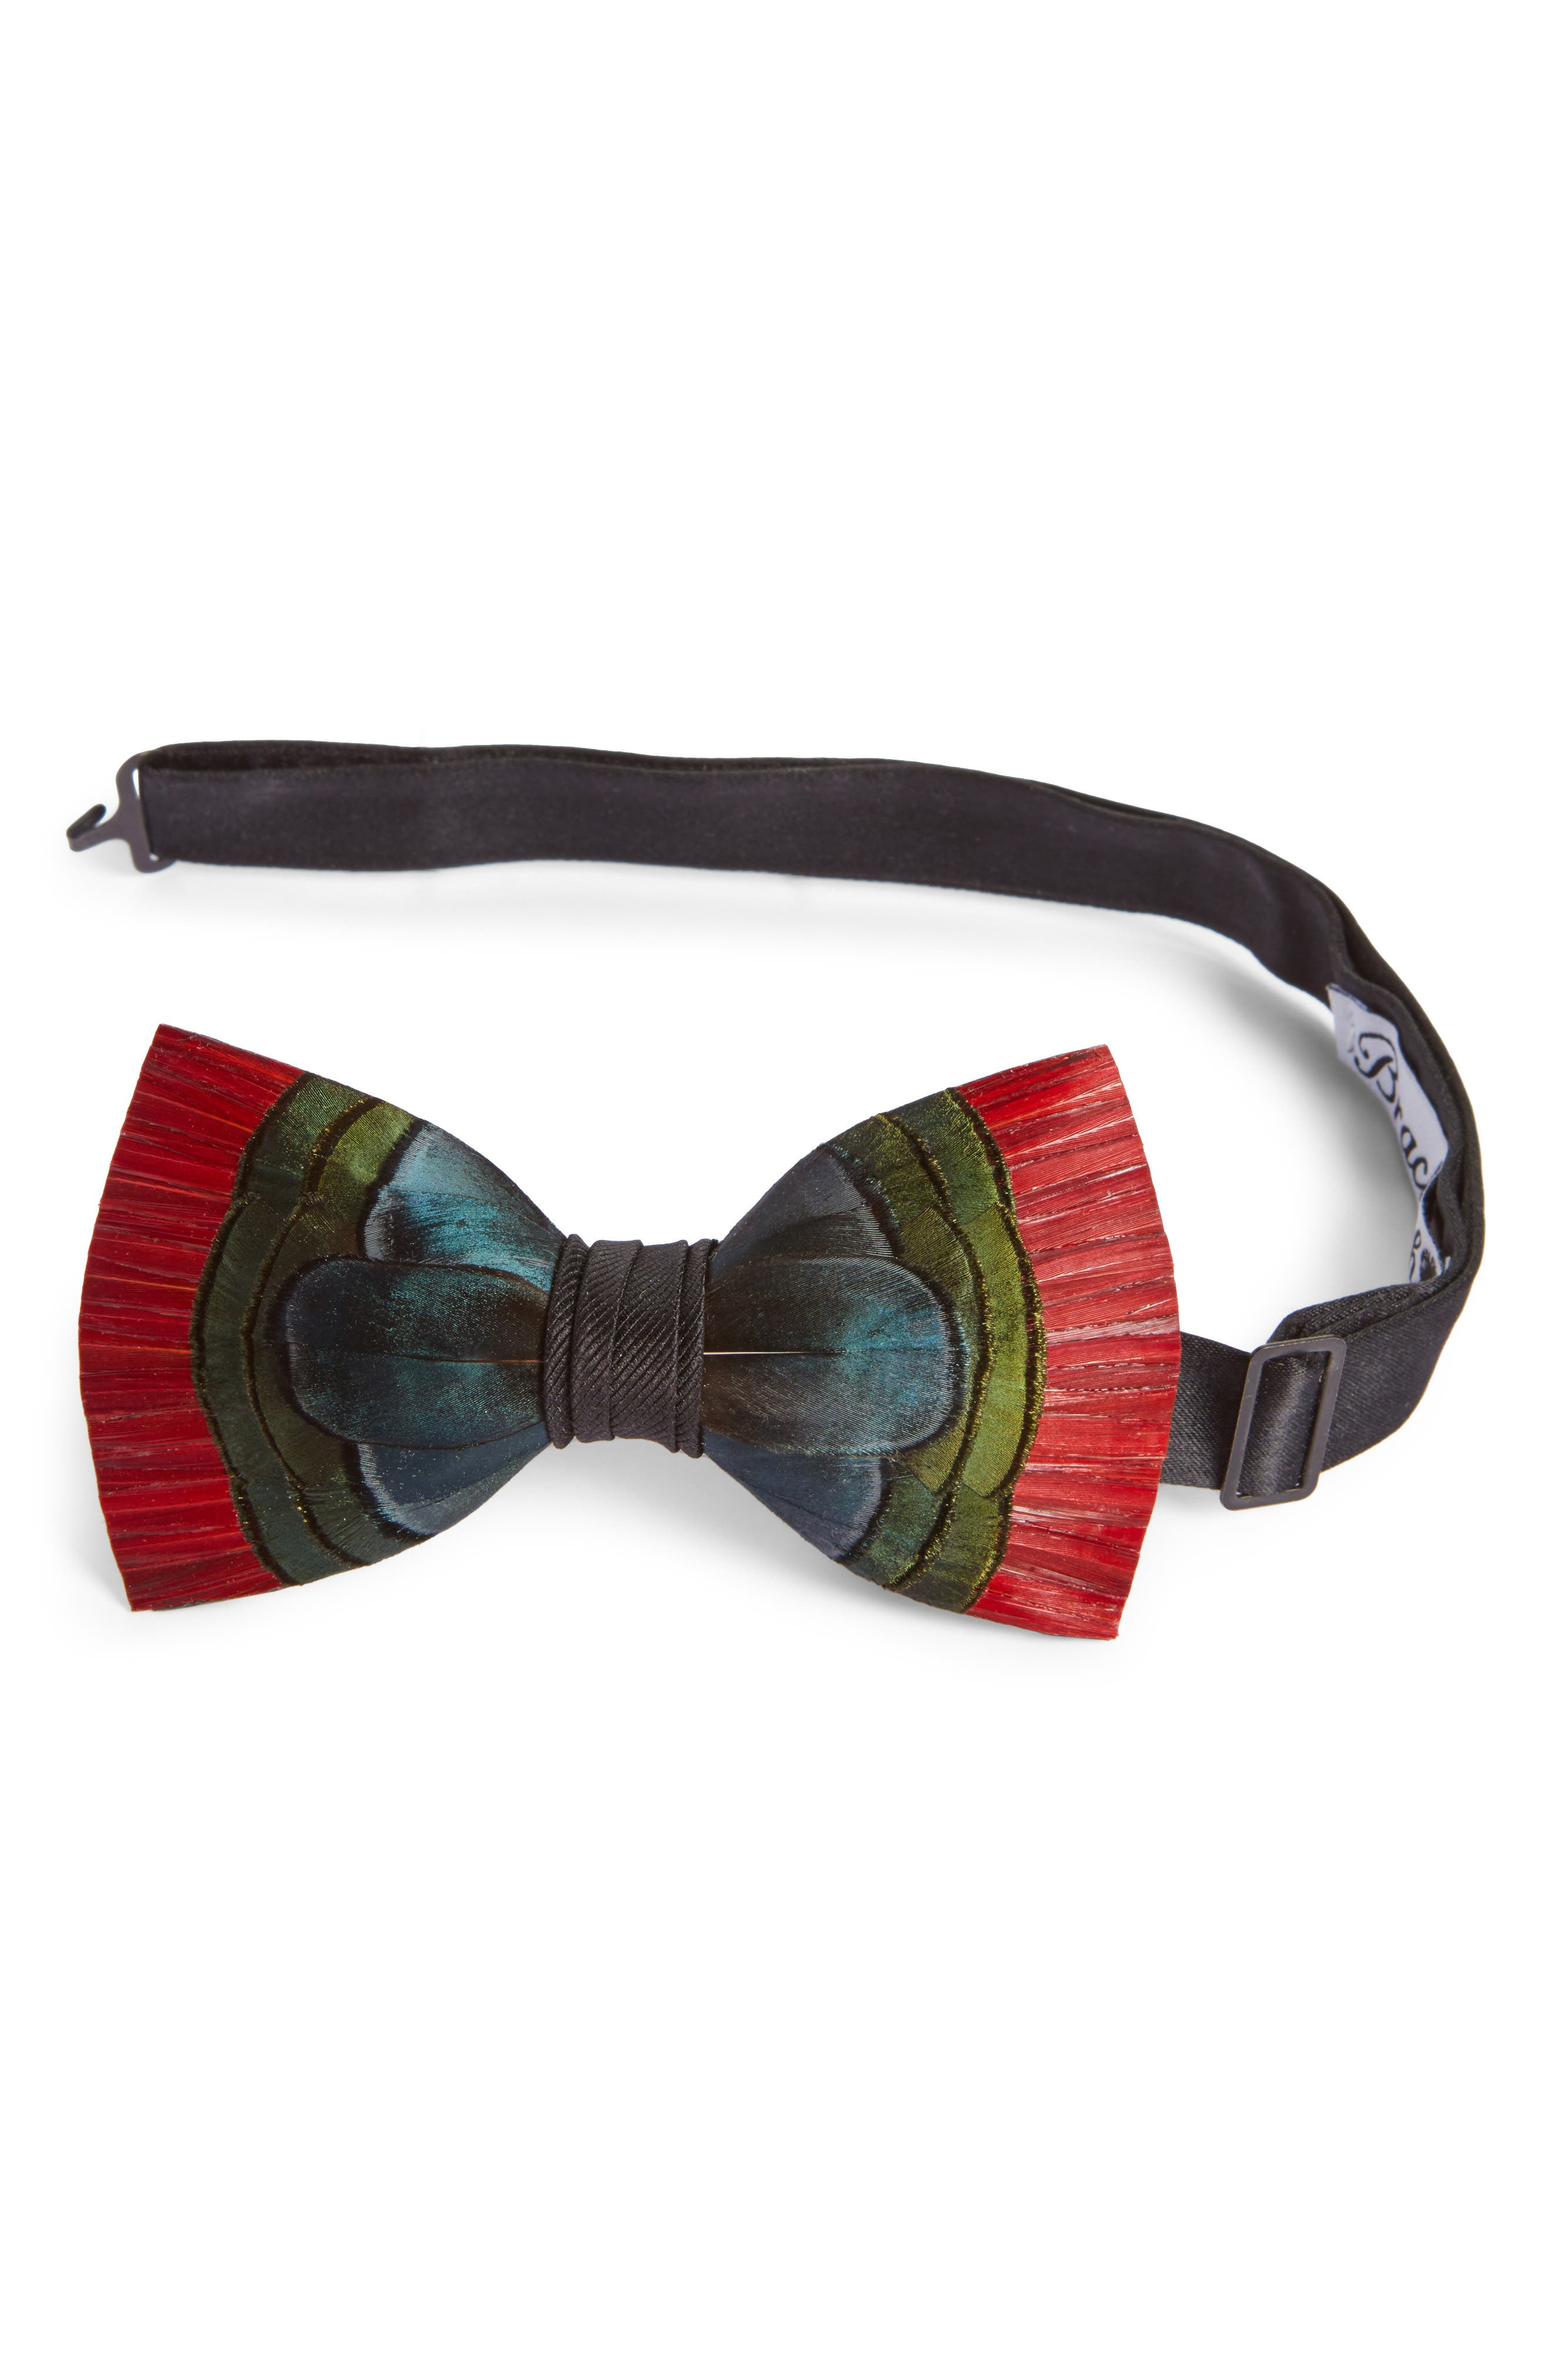 Hemingway Feather Bow Tie,                         Main,                         color, NAVY/ GREEN/ RED